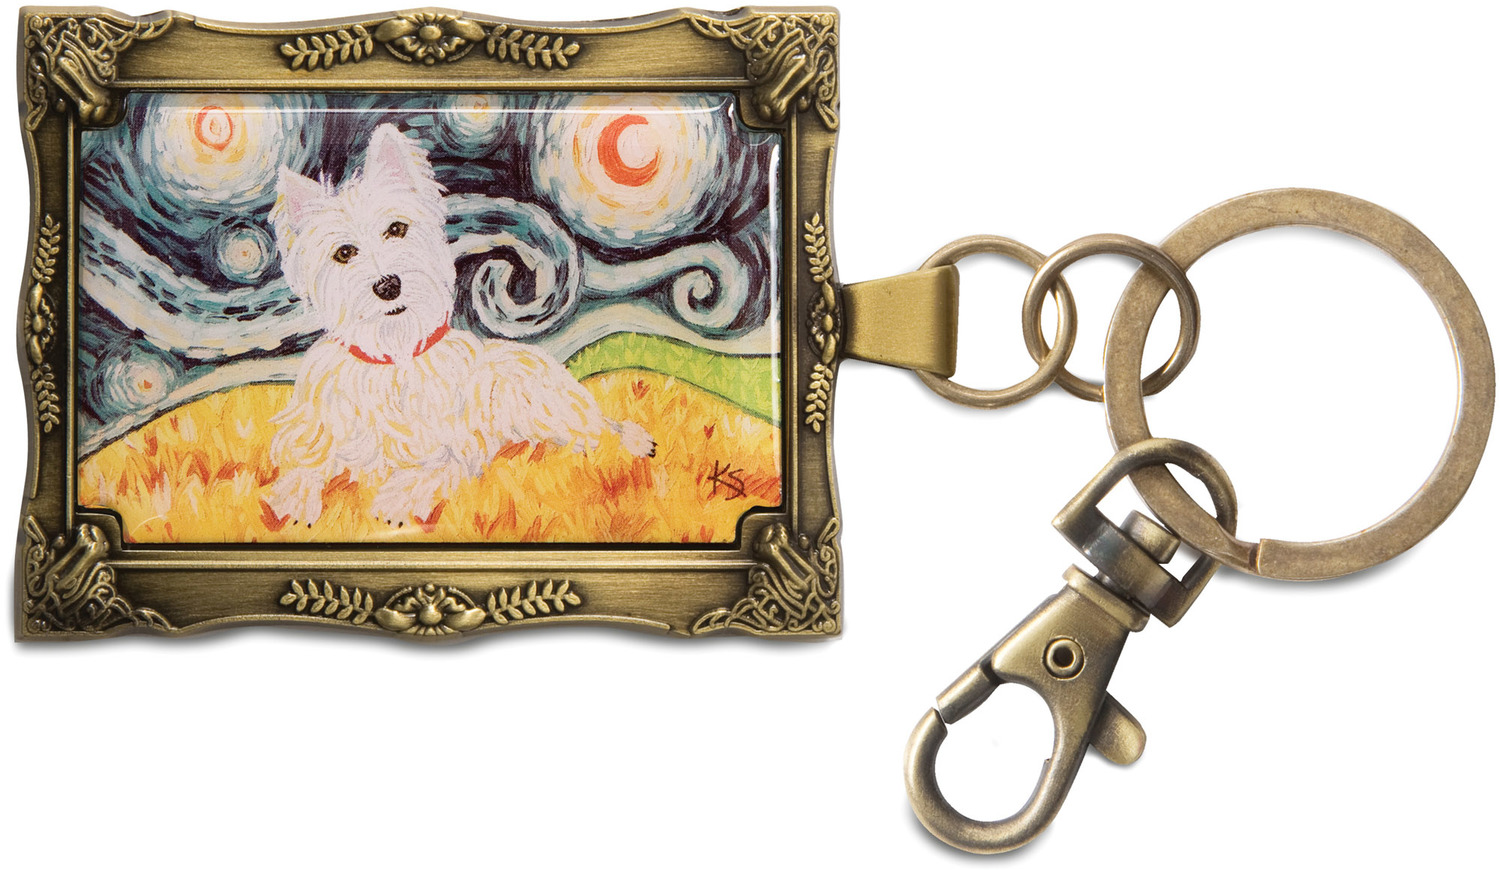 "West Highland Terrier - Van by Paw Palettes - West Highland Terrier - Van - 2""x 2.75"" Key Chain"